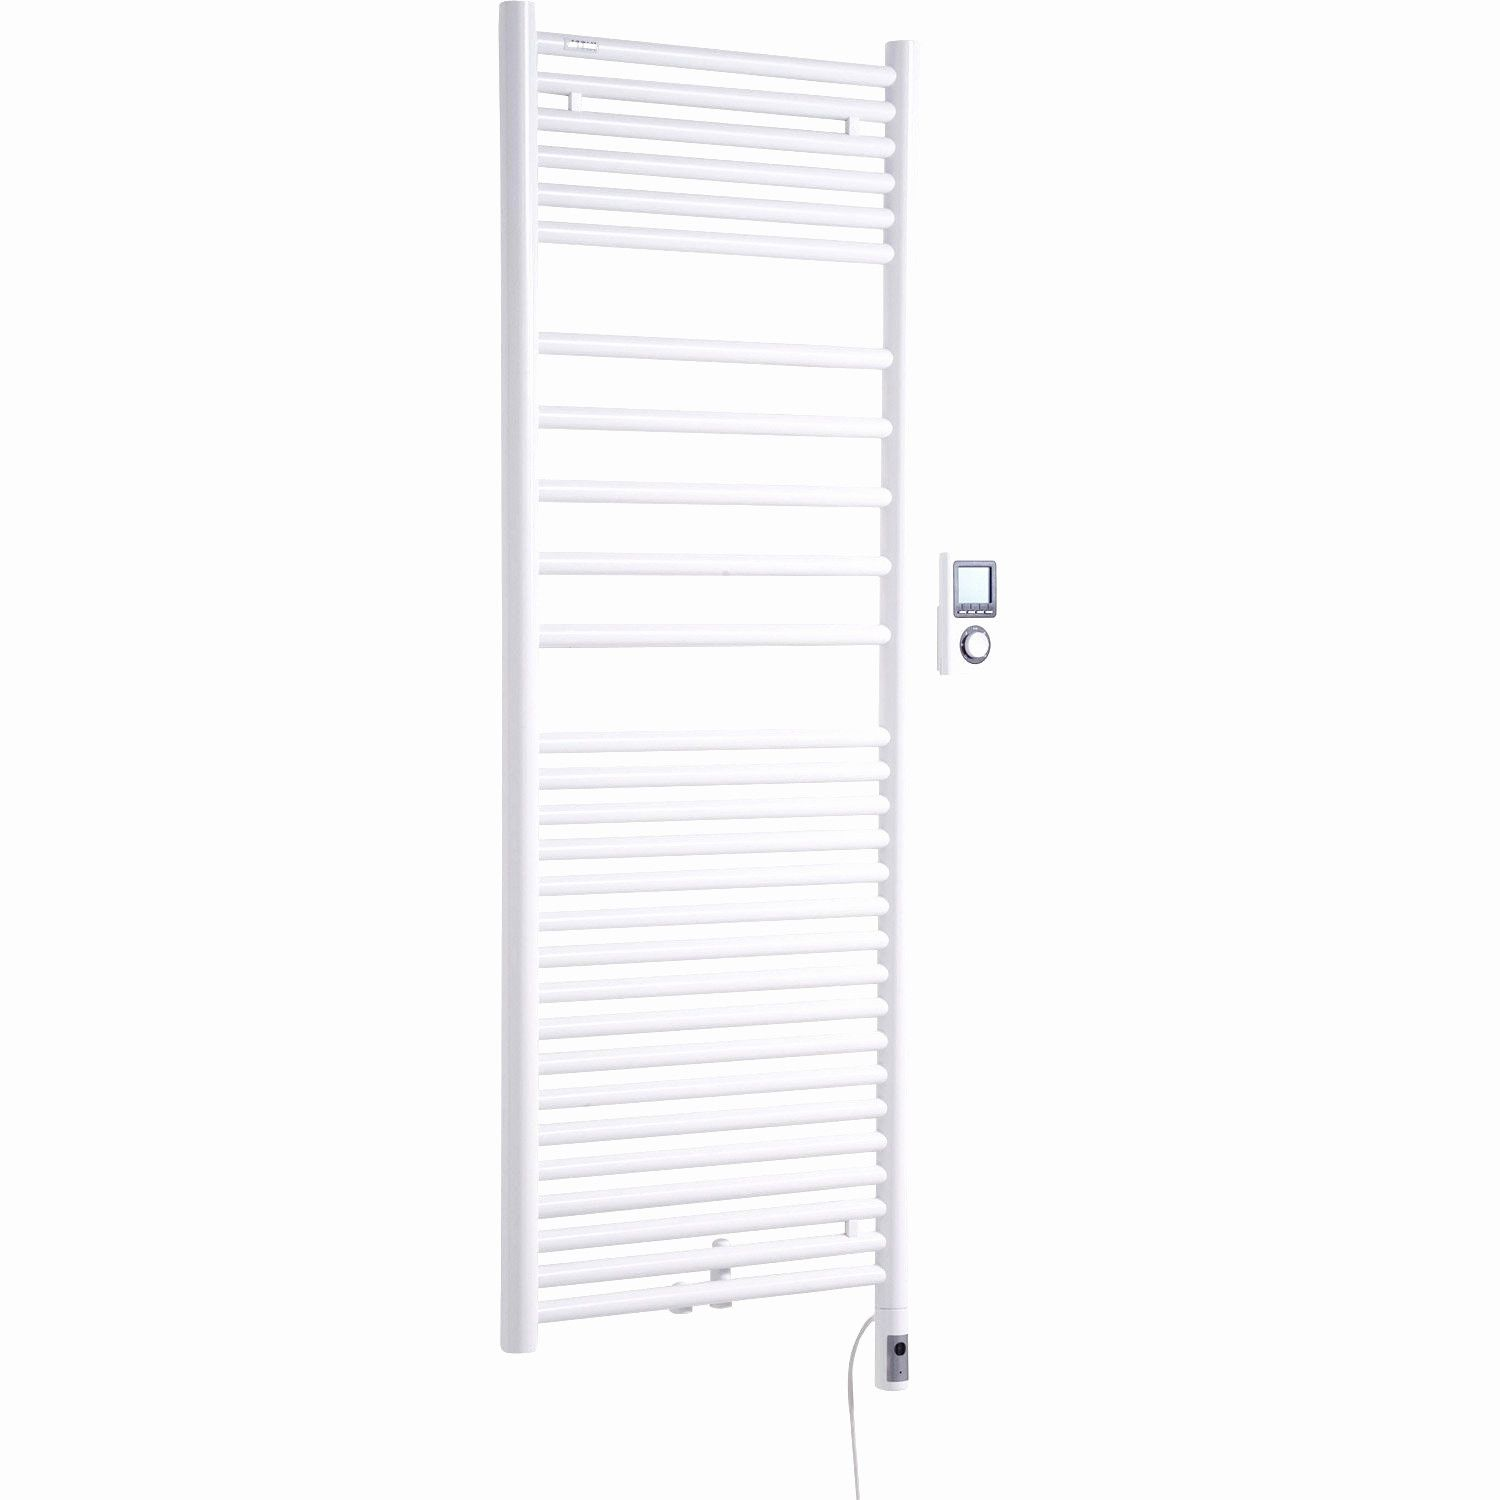 Lovely Radiateur Vertical Castorama Bathroom Heater Bathroom Radiators Tall Cabinet Storage